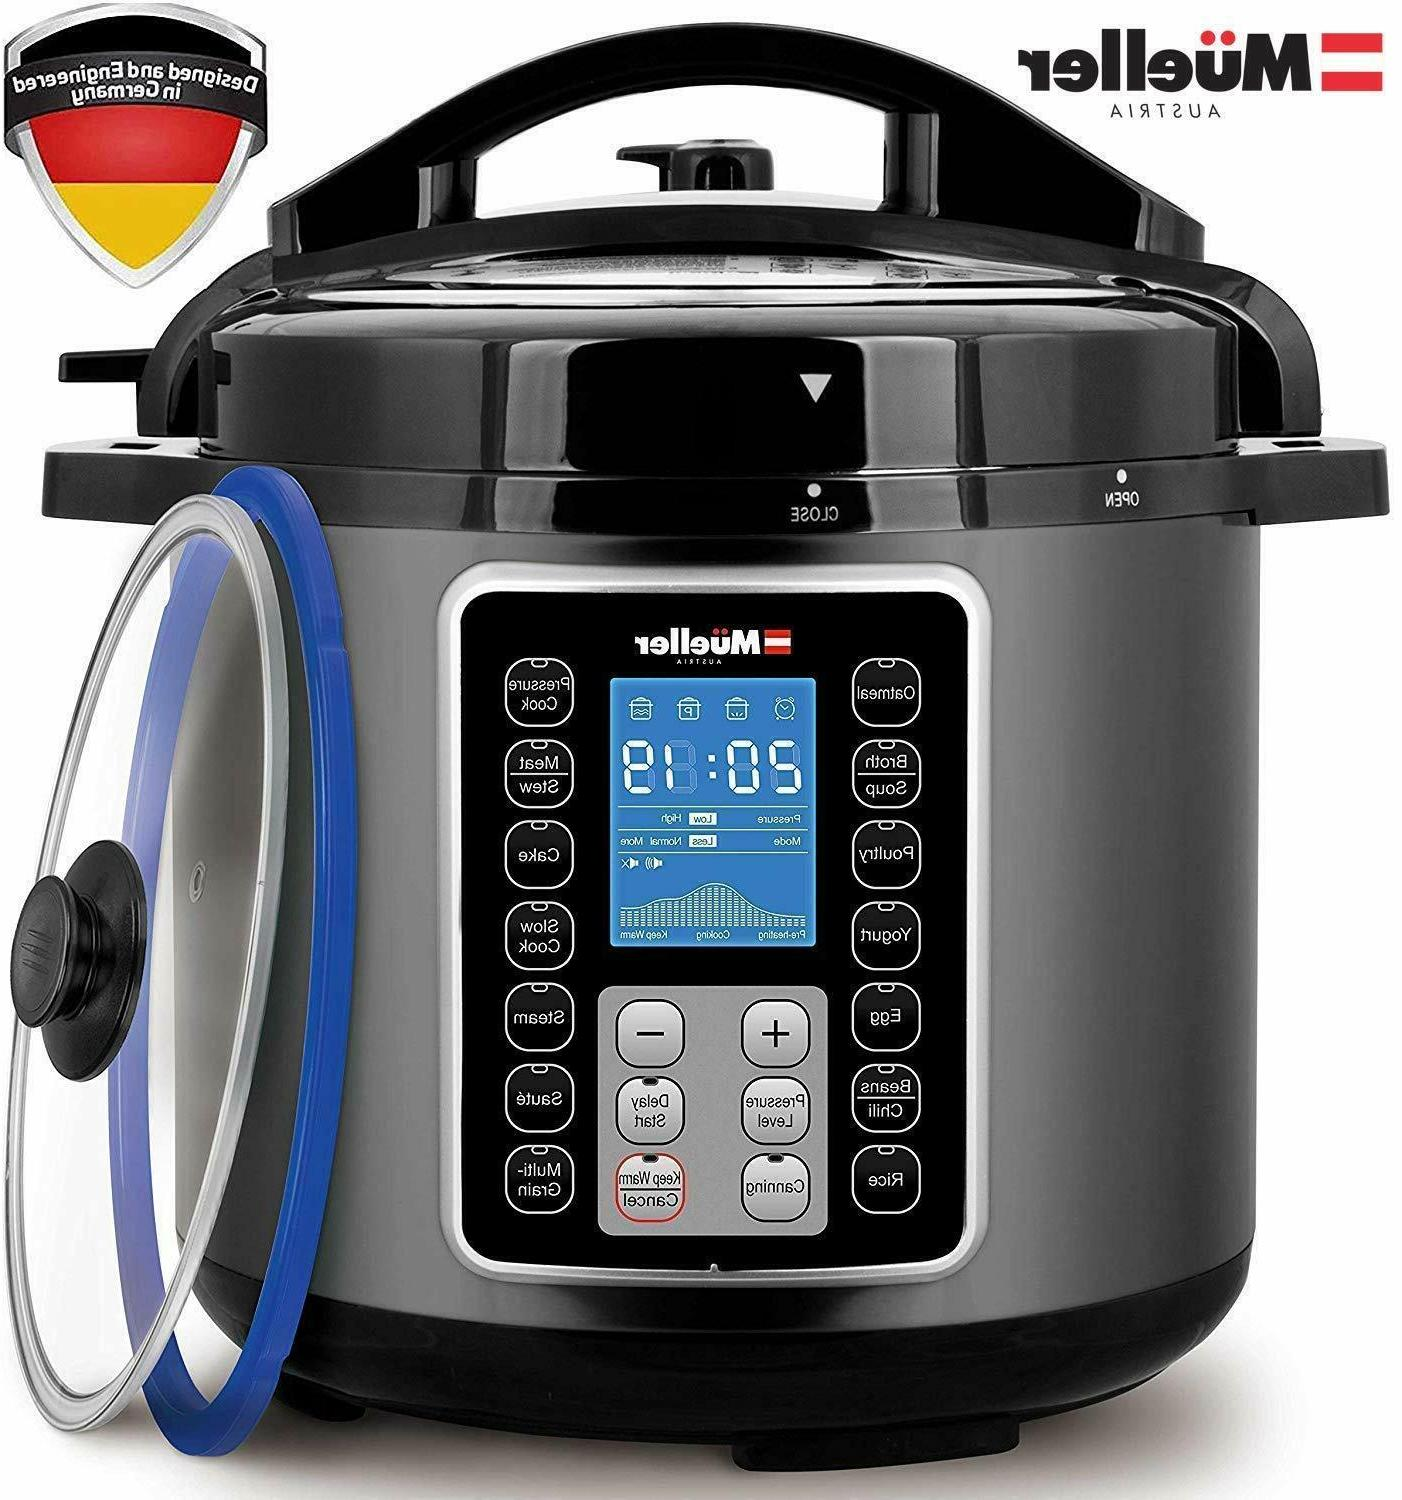 Ultra Cooker 15 in Programmable Instapot new